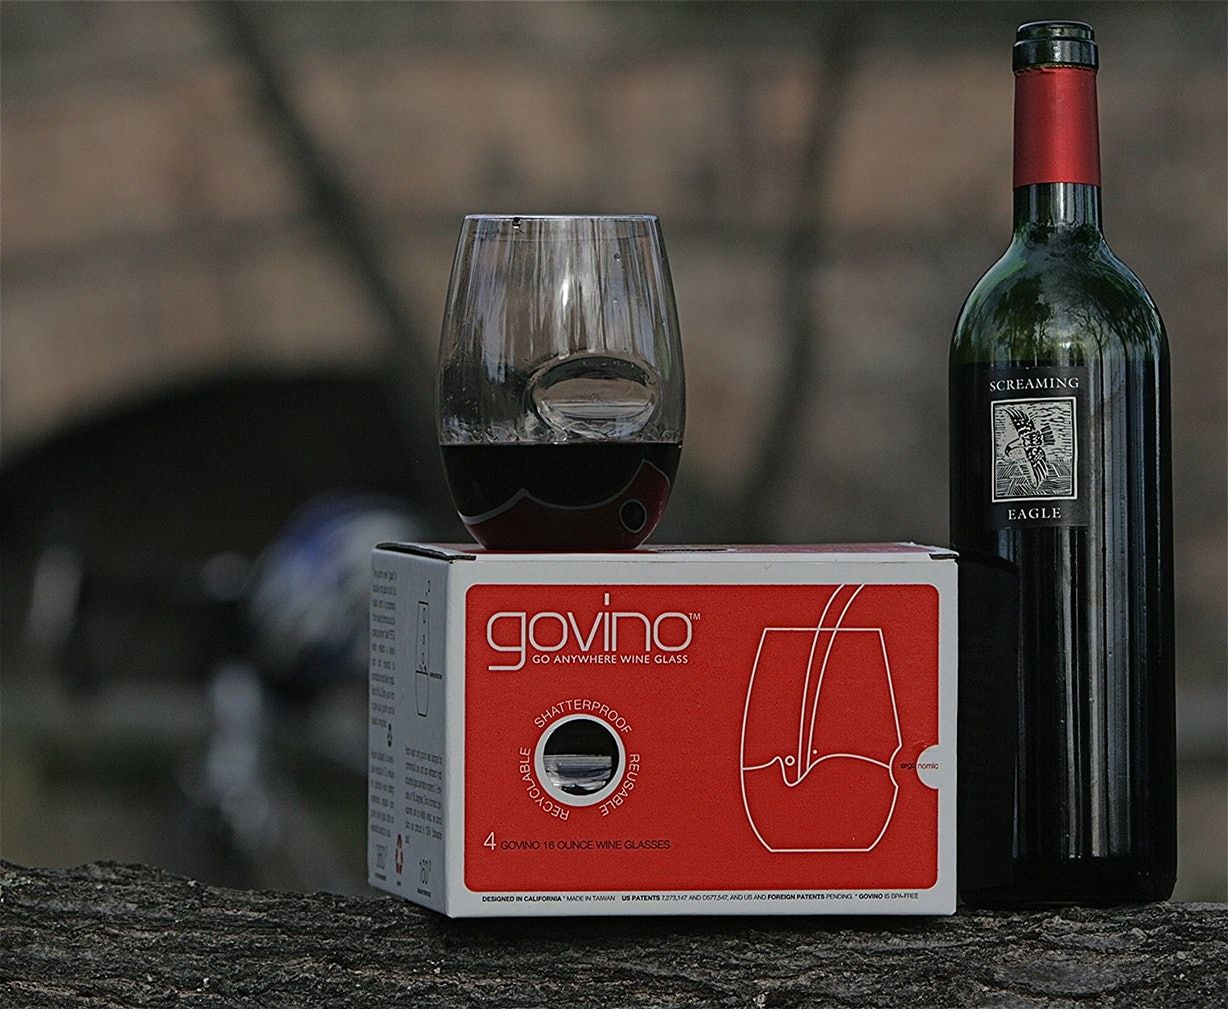 22 Of The Weirdest Things With Insanely High Reviews On Amazon Wine Govino Wine Gifts